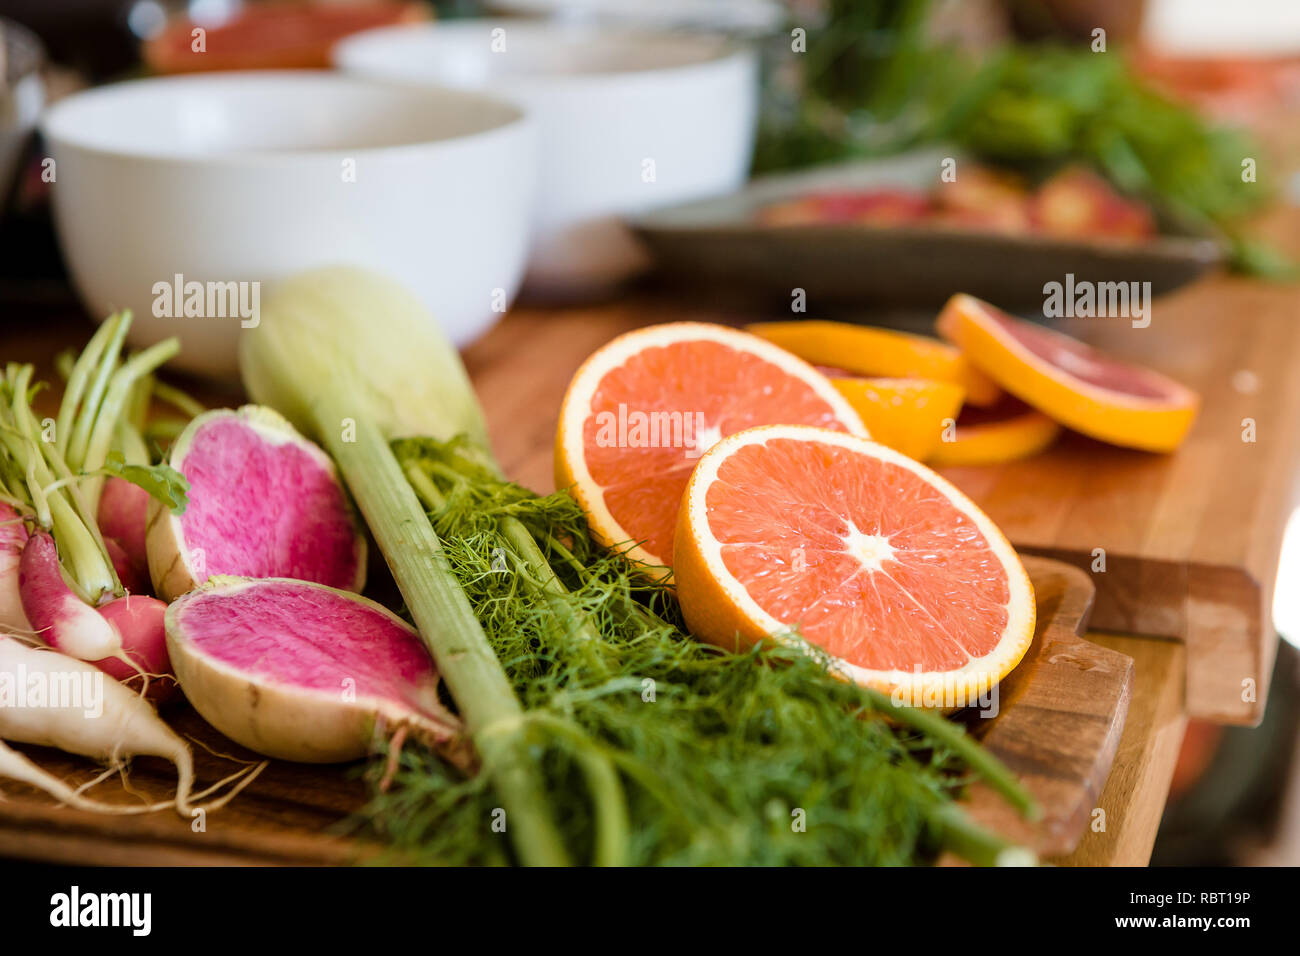 Fresh Ingredients for Marinade and Toppings Laid out in Home Kitchen - Stock Image